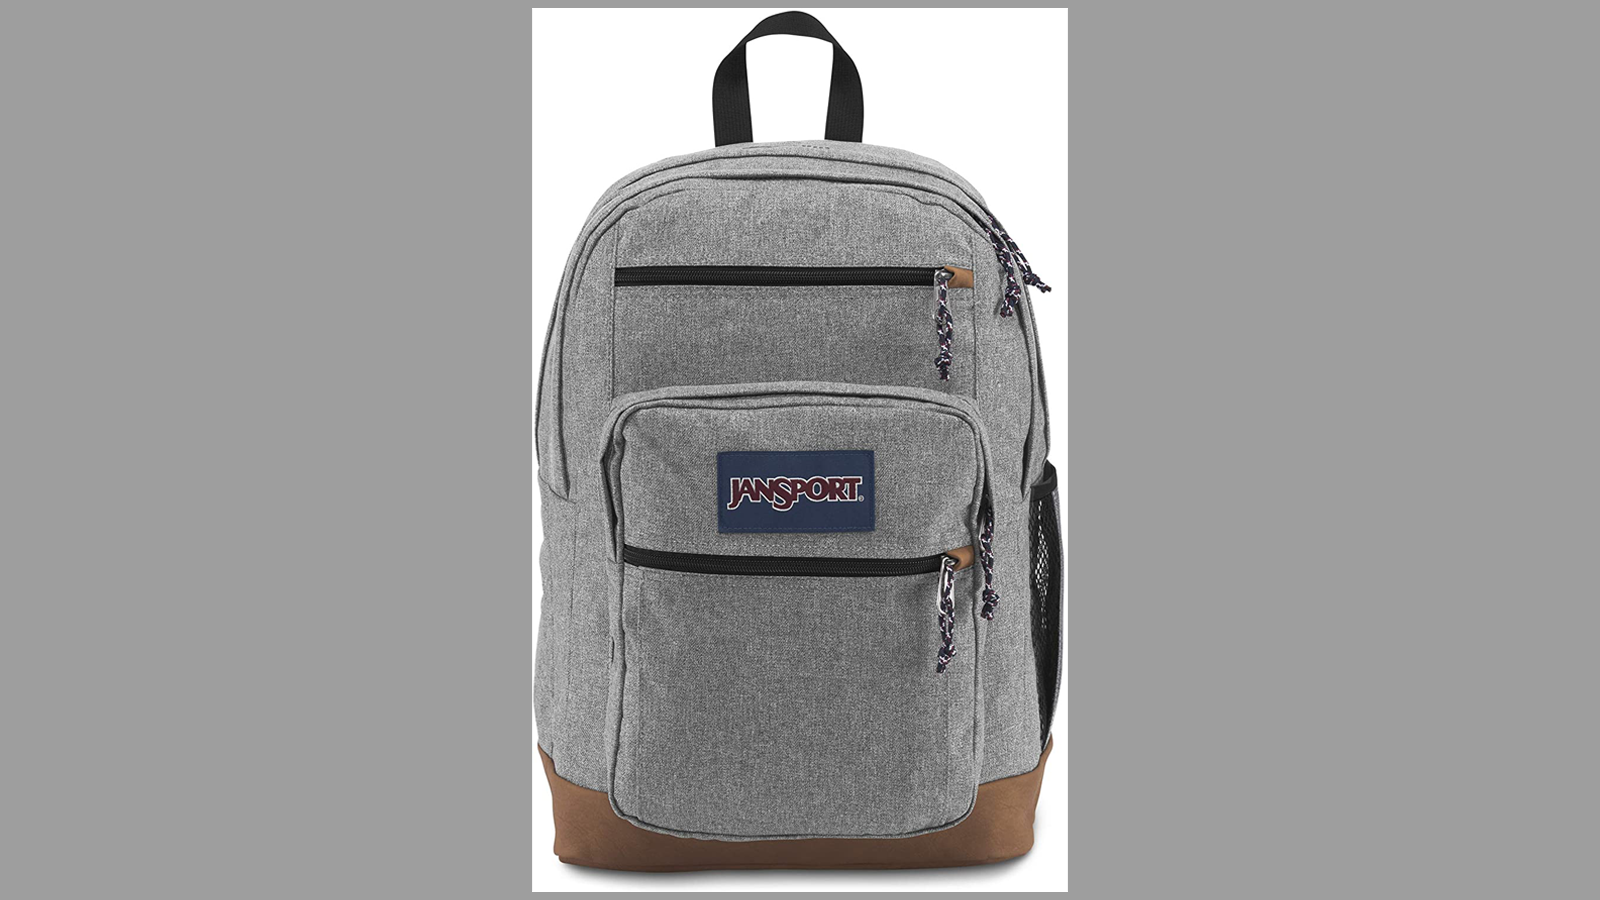 Store Your Laptop, Books, and Other Gear in the JanSport Cool Student Backpack